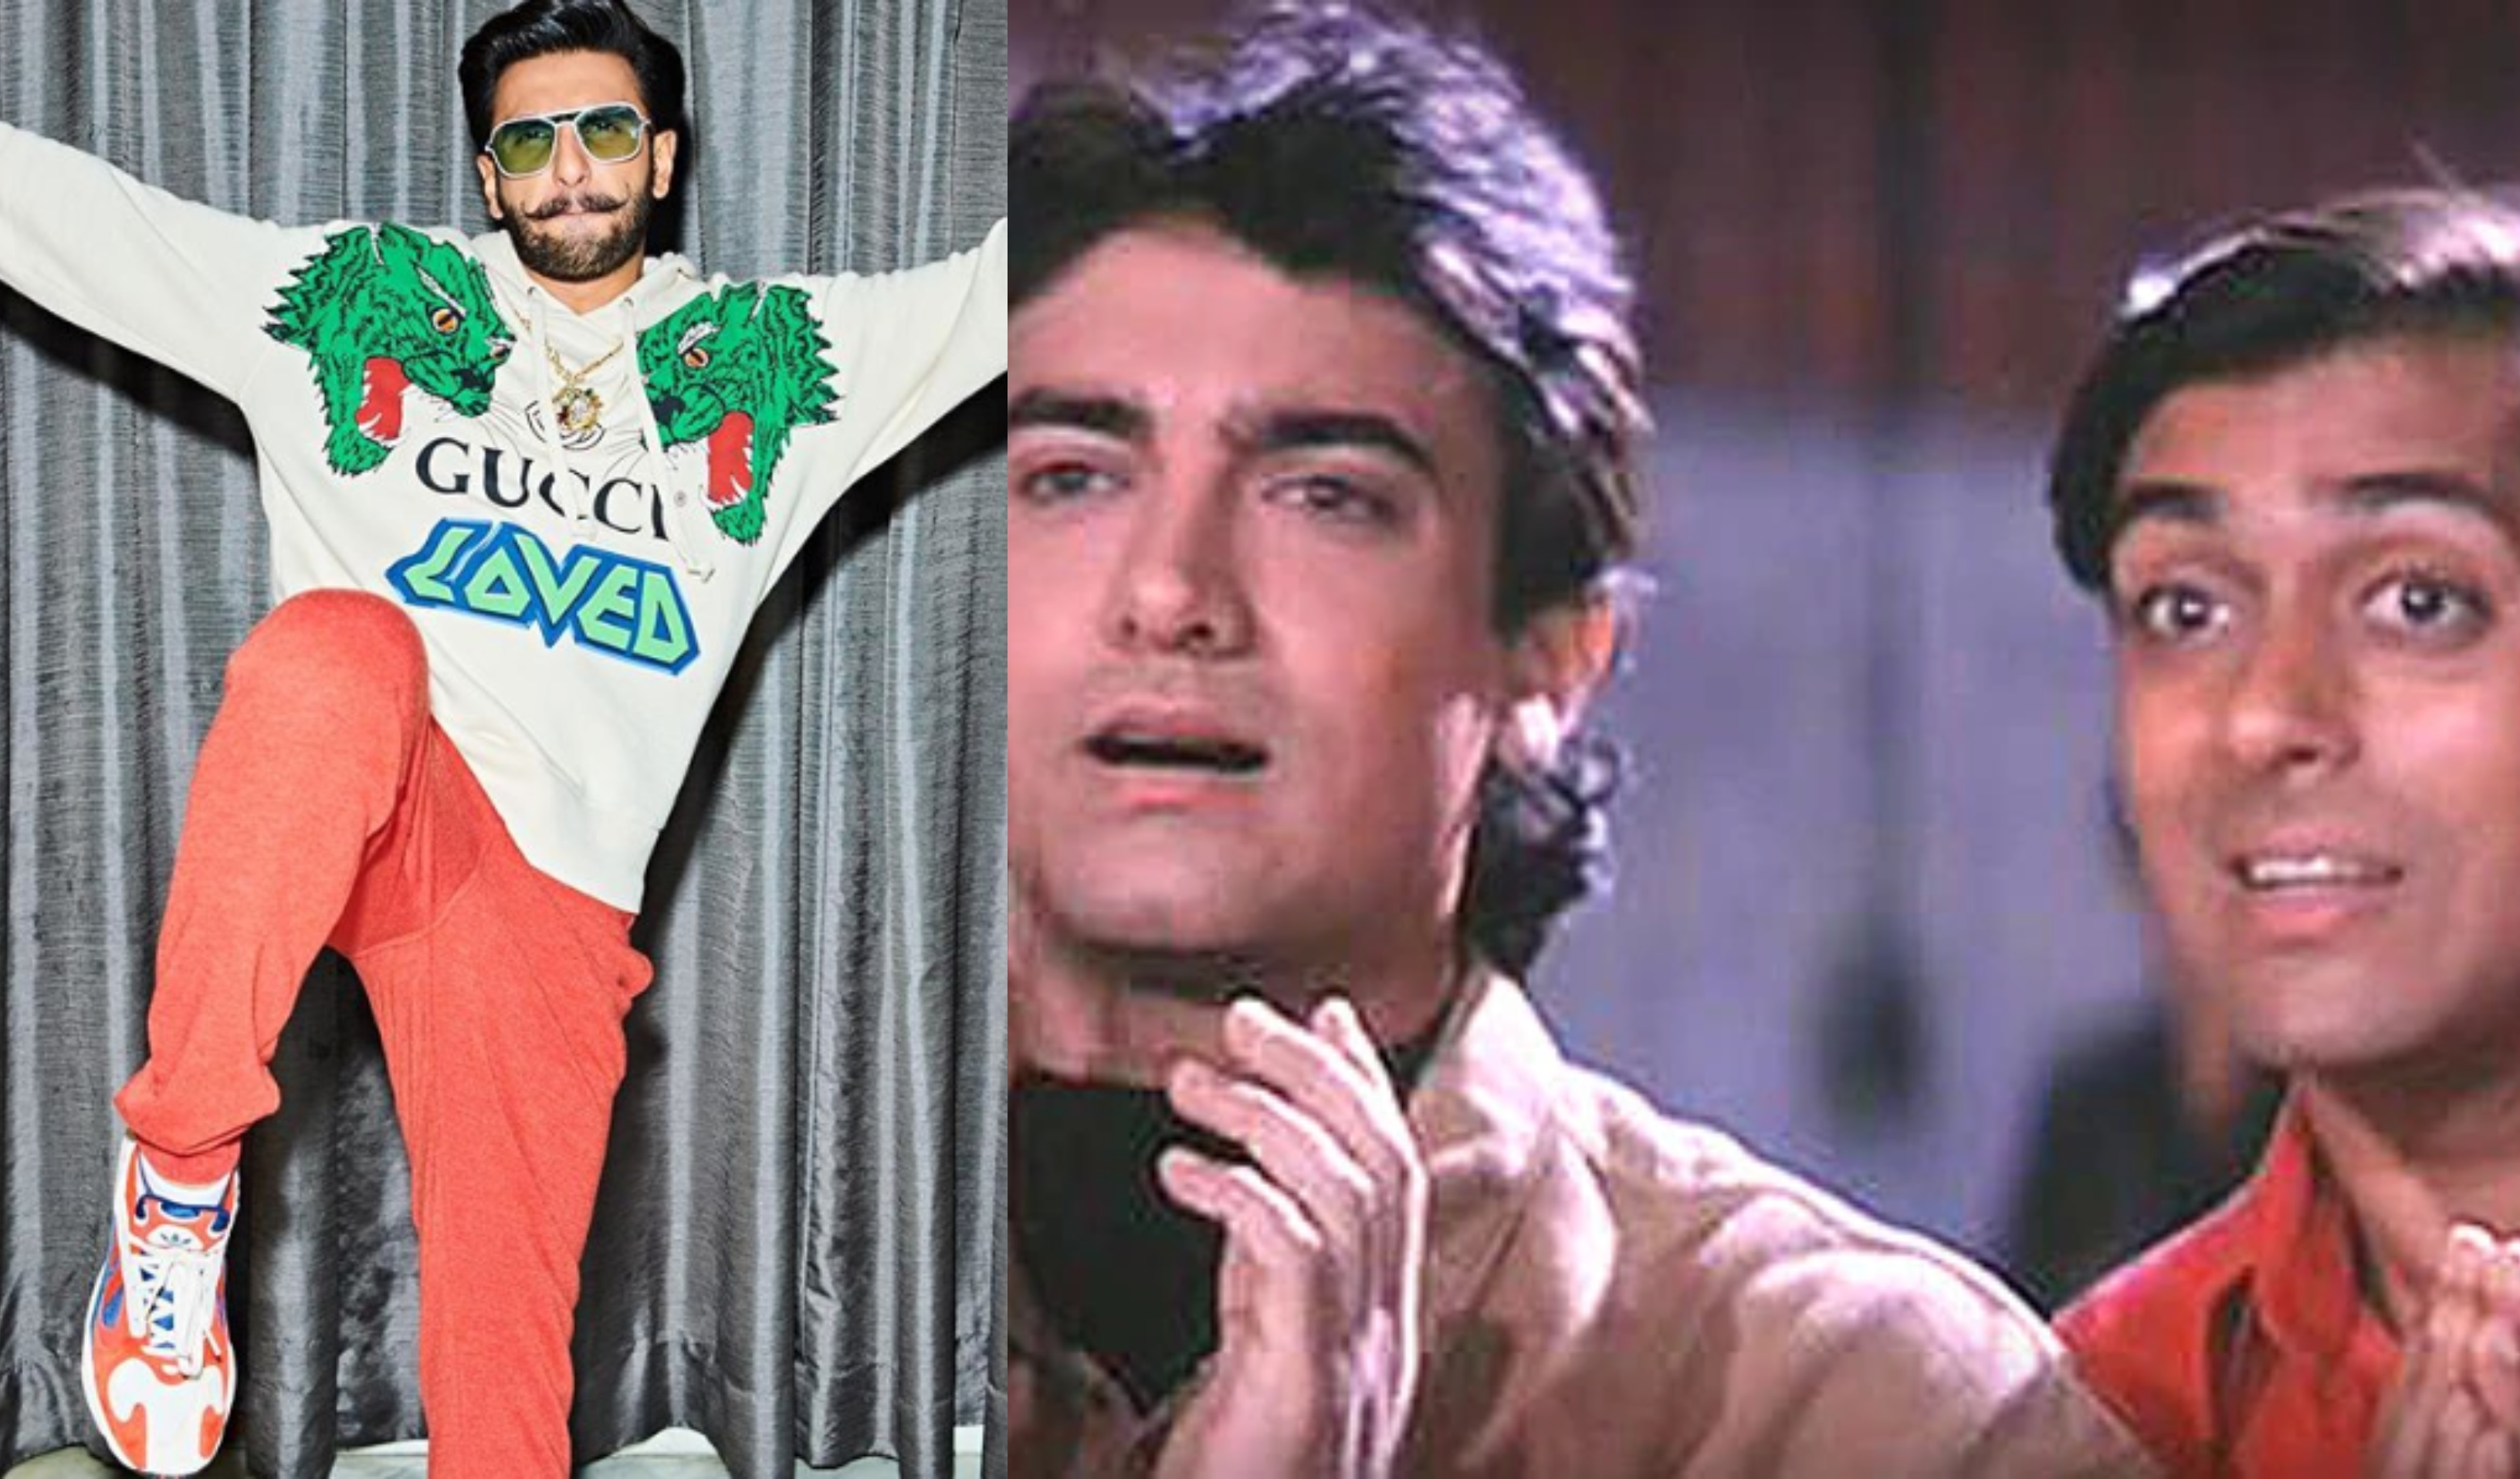 Andaz Apna Apna, Ranveer Singh, Simmba, Movie, Remake, Film, Salman Khan, Aamir Khan, NewsMobile, Mobile, News, India, Entertainment